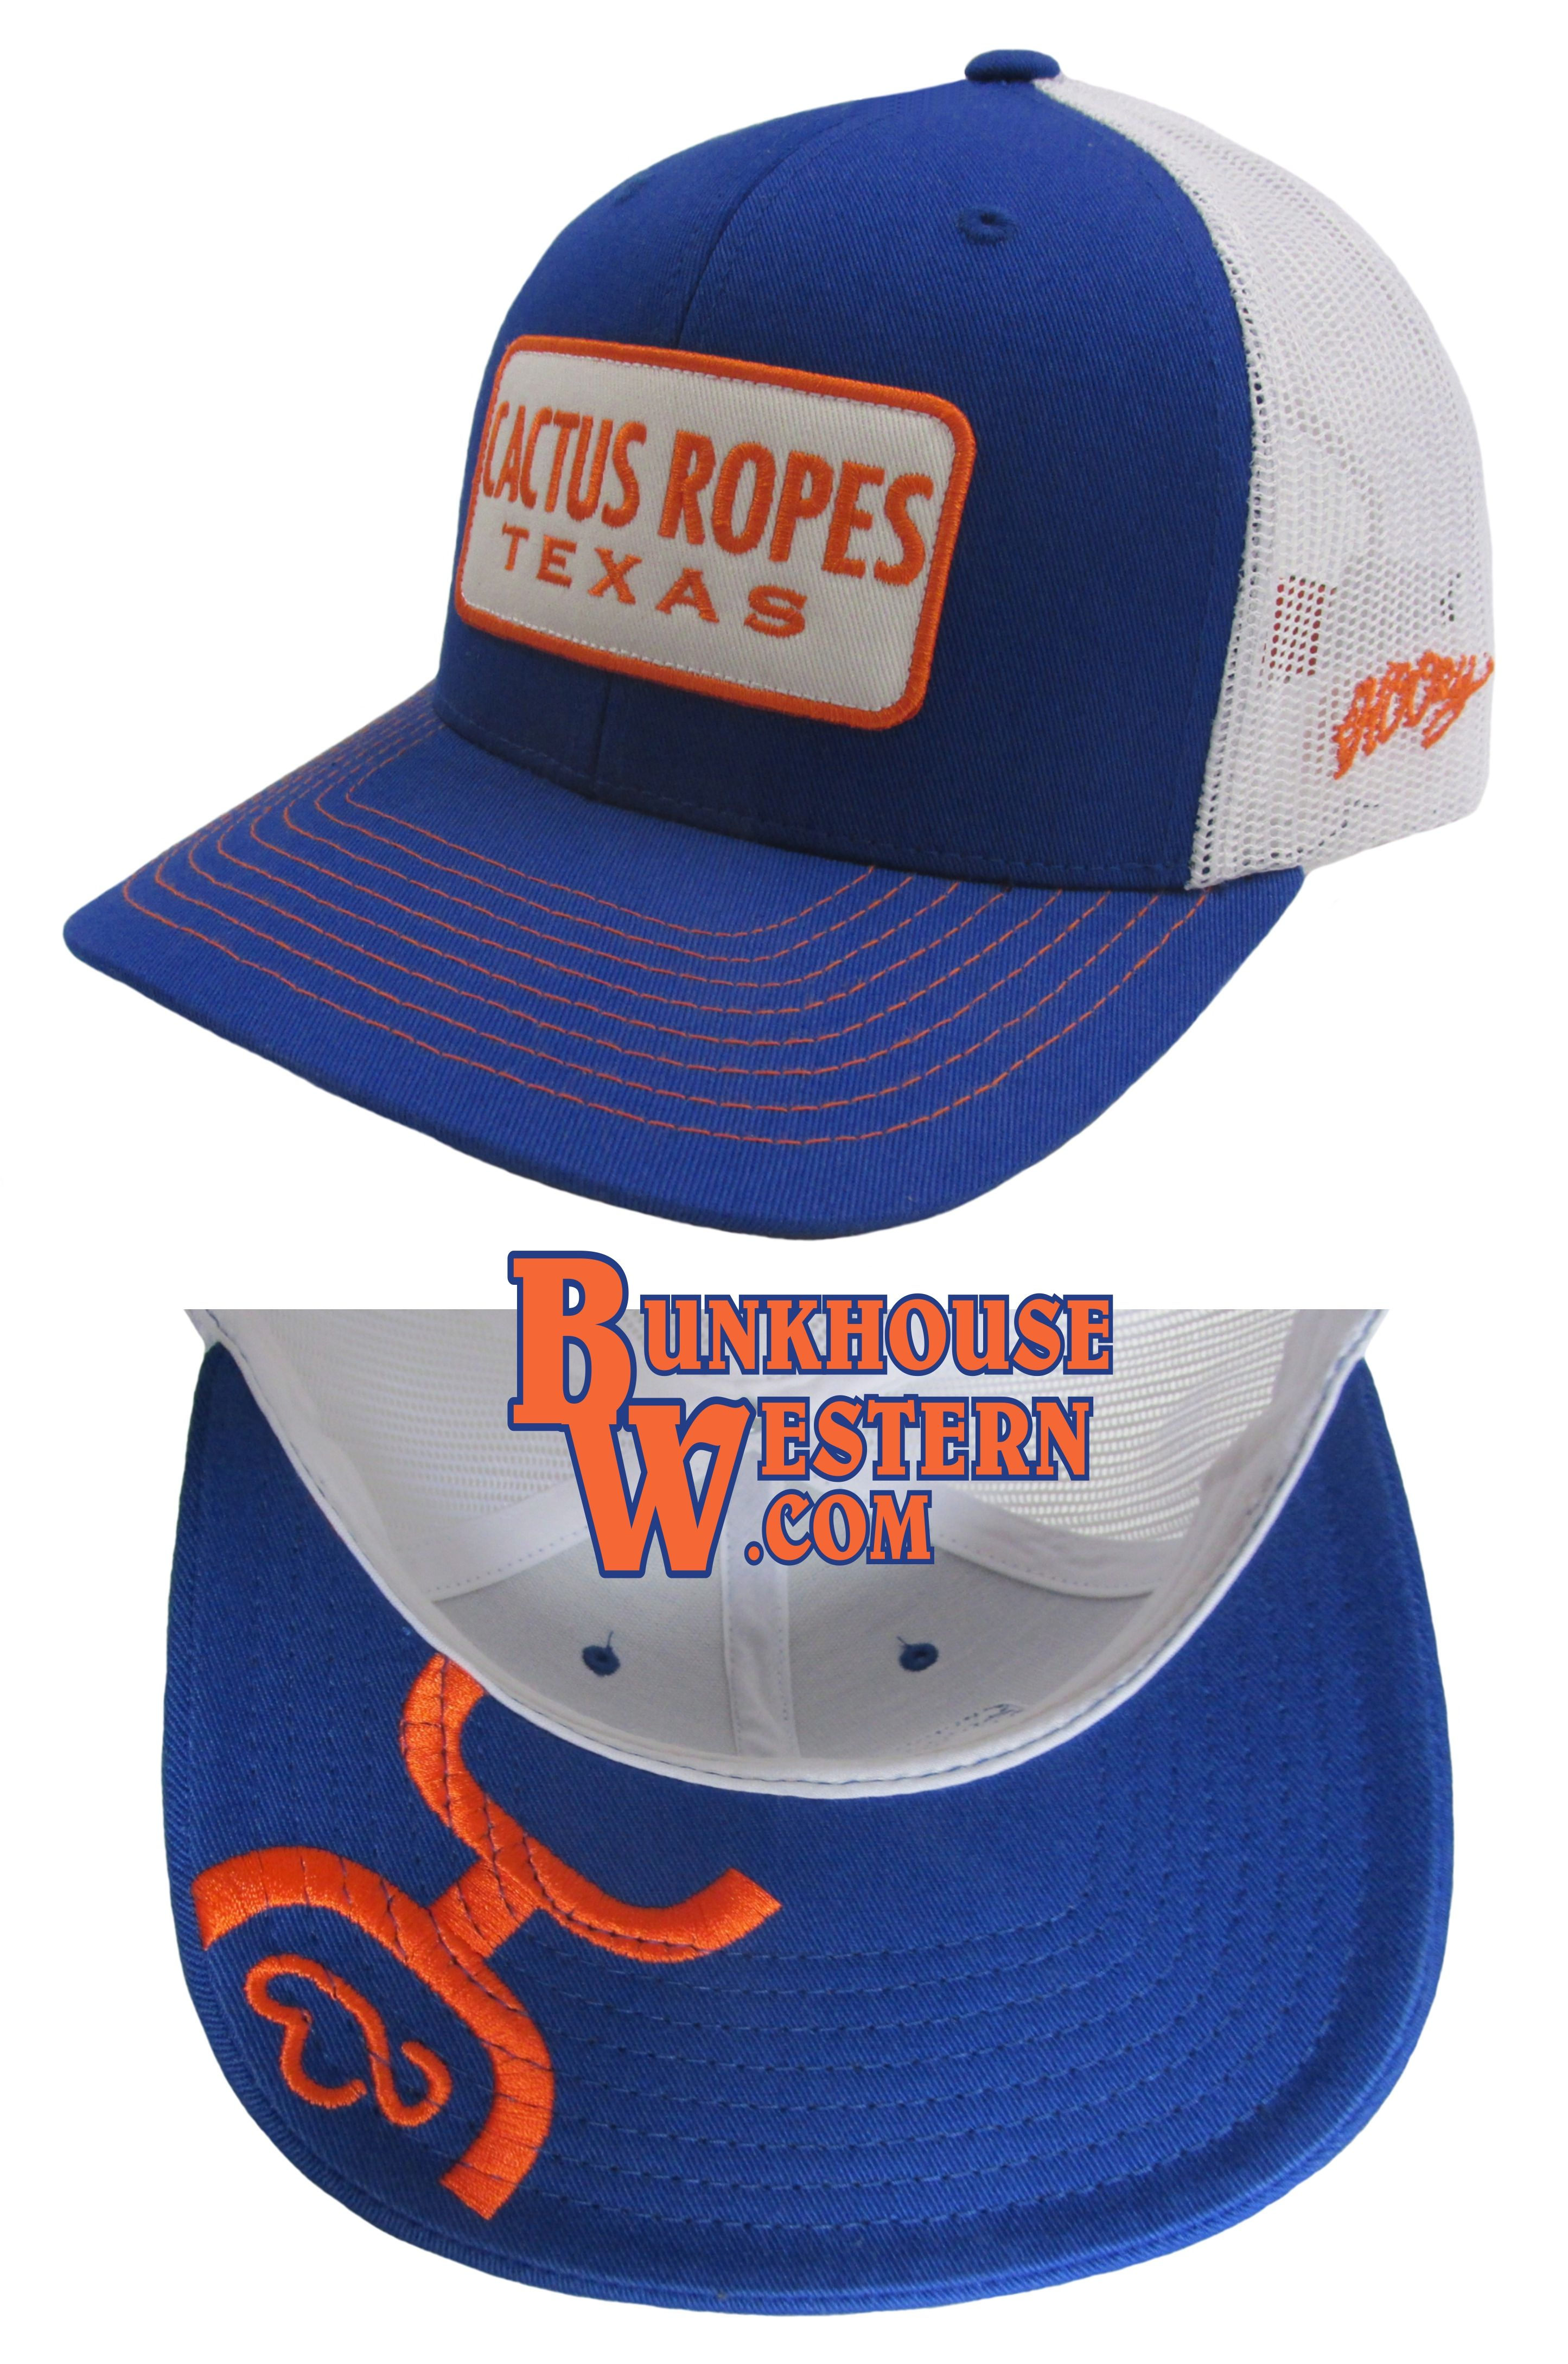 huge discount 21b43 65d9e Cactus Ropes Texas, Blue  amp  Orange Hooey Trucker Cap, Team Roping, Rodeo